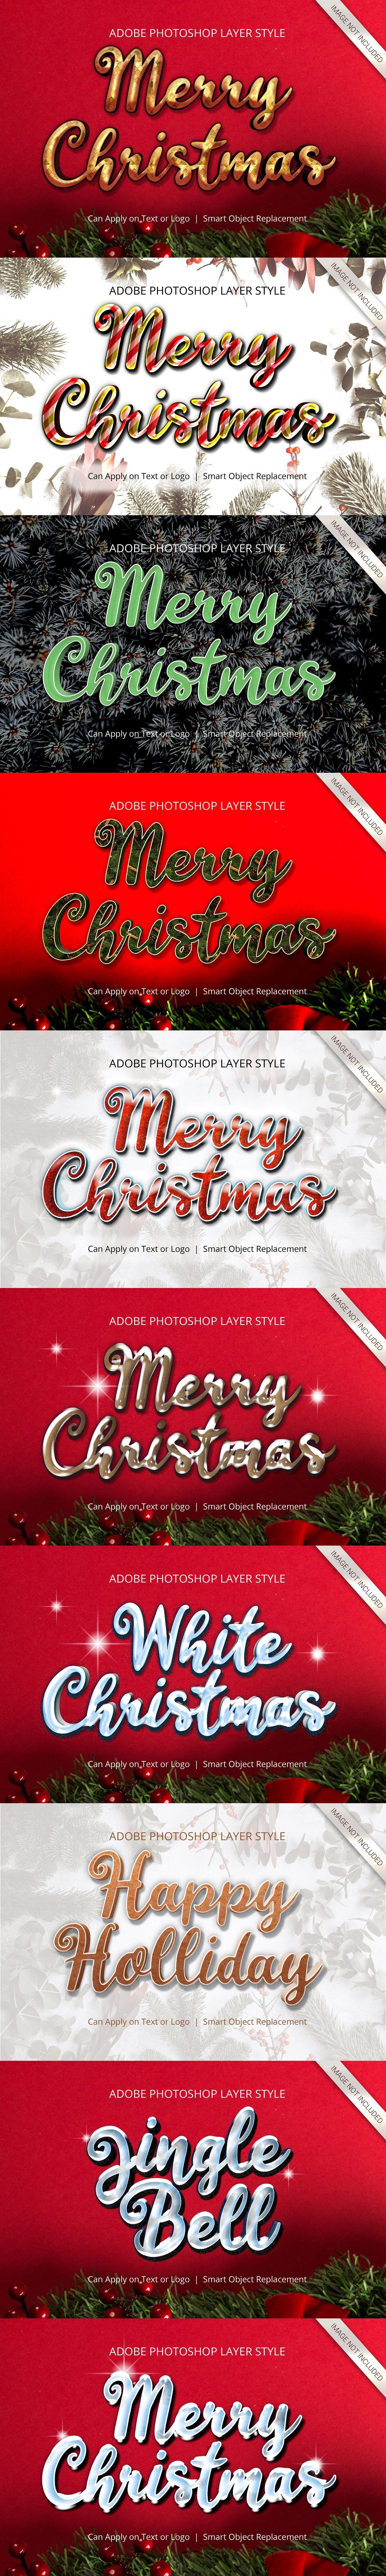 Photoshop Christmas Layer Style